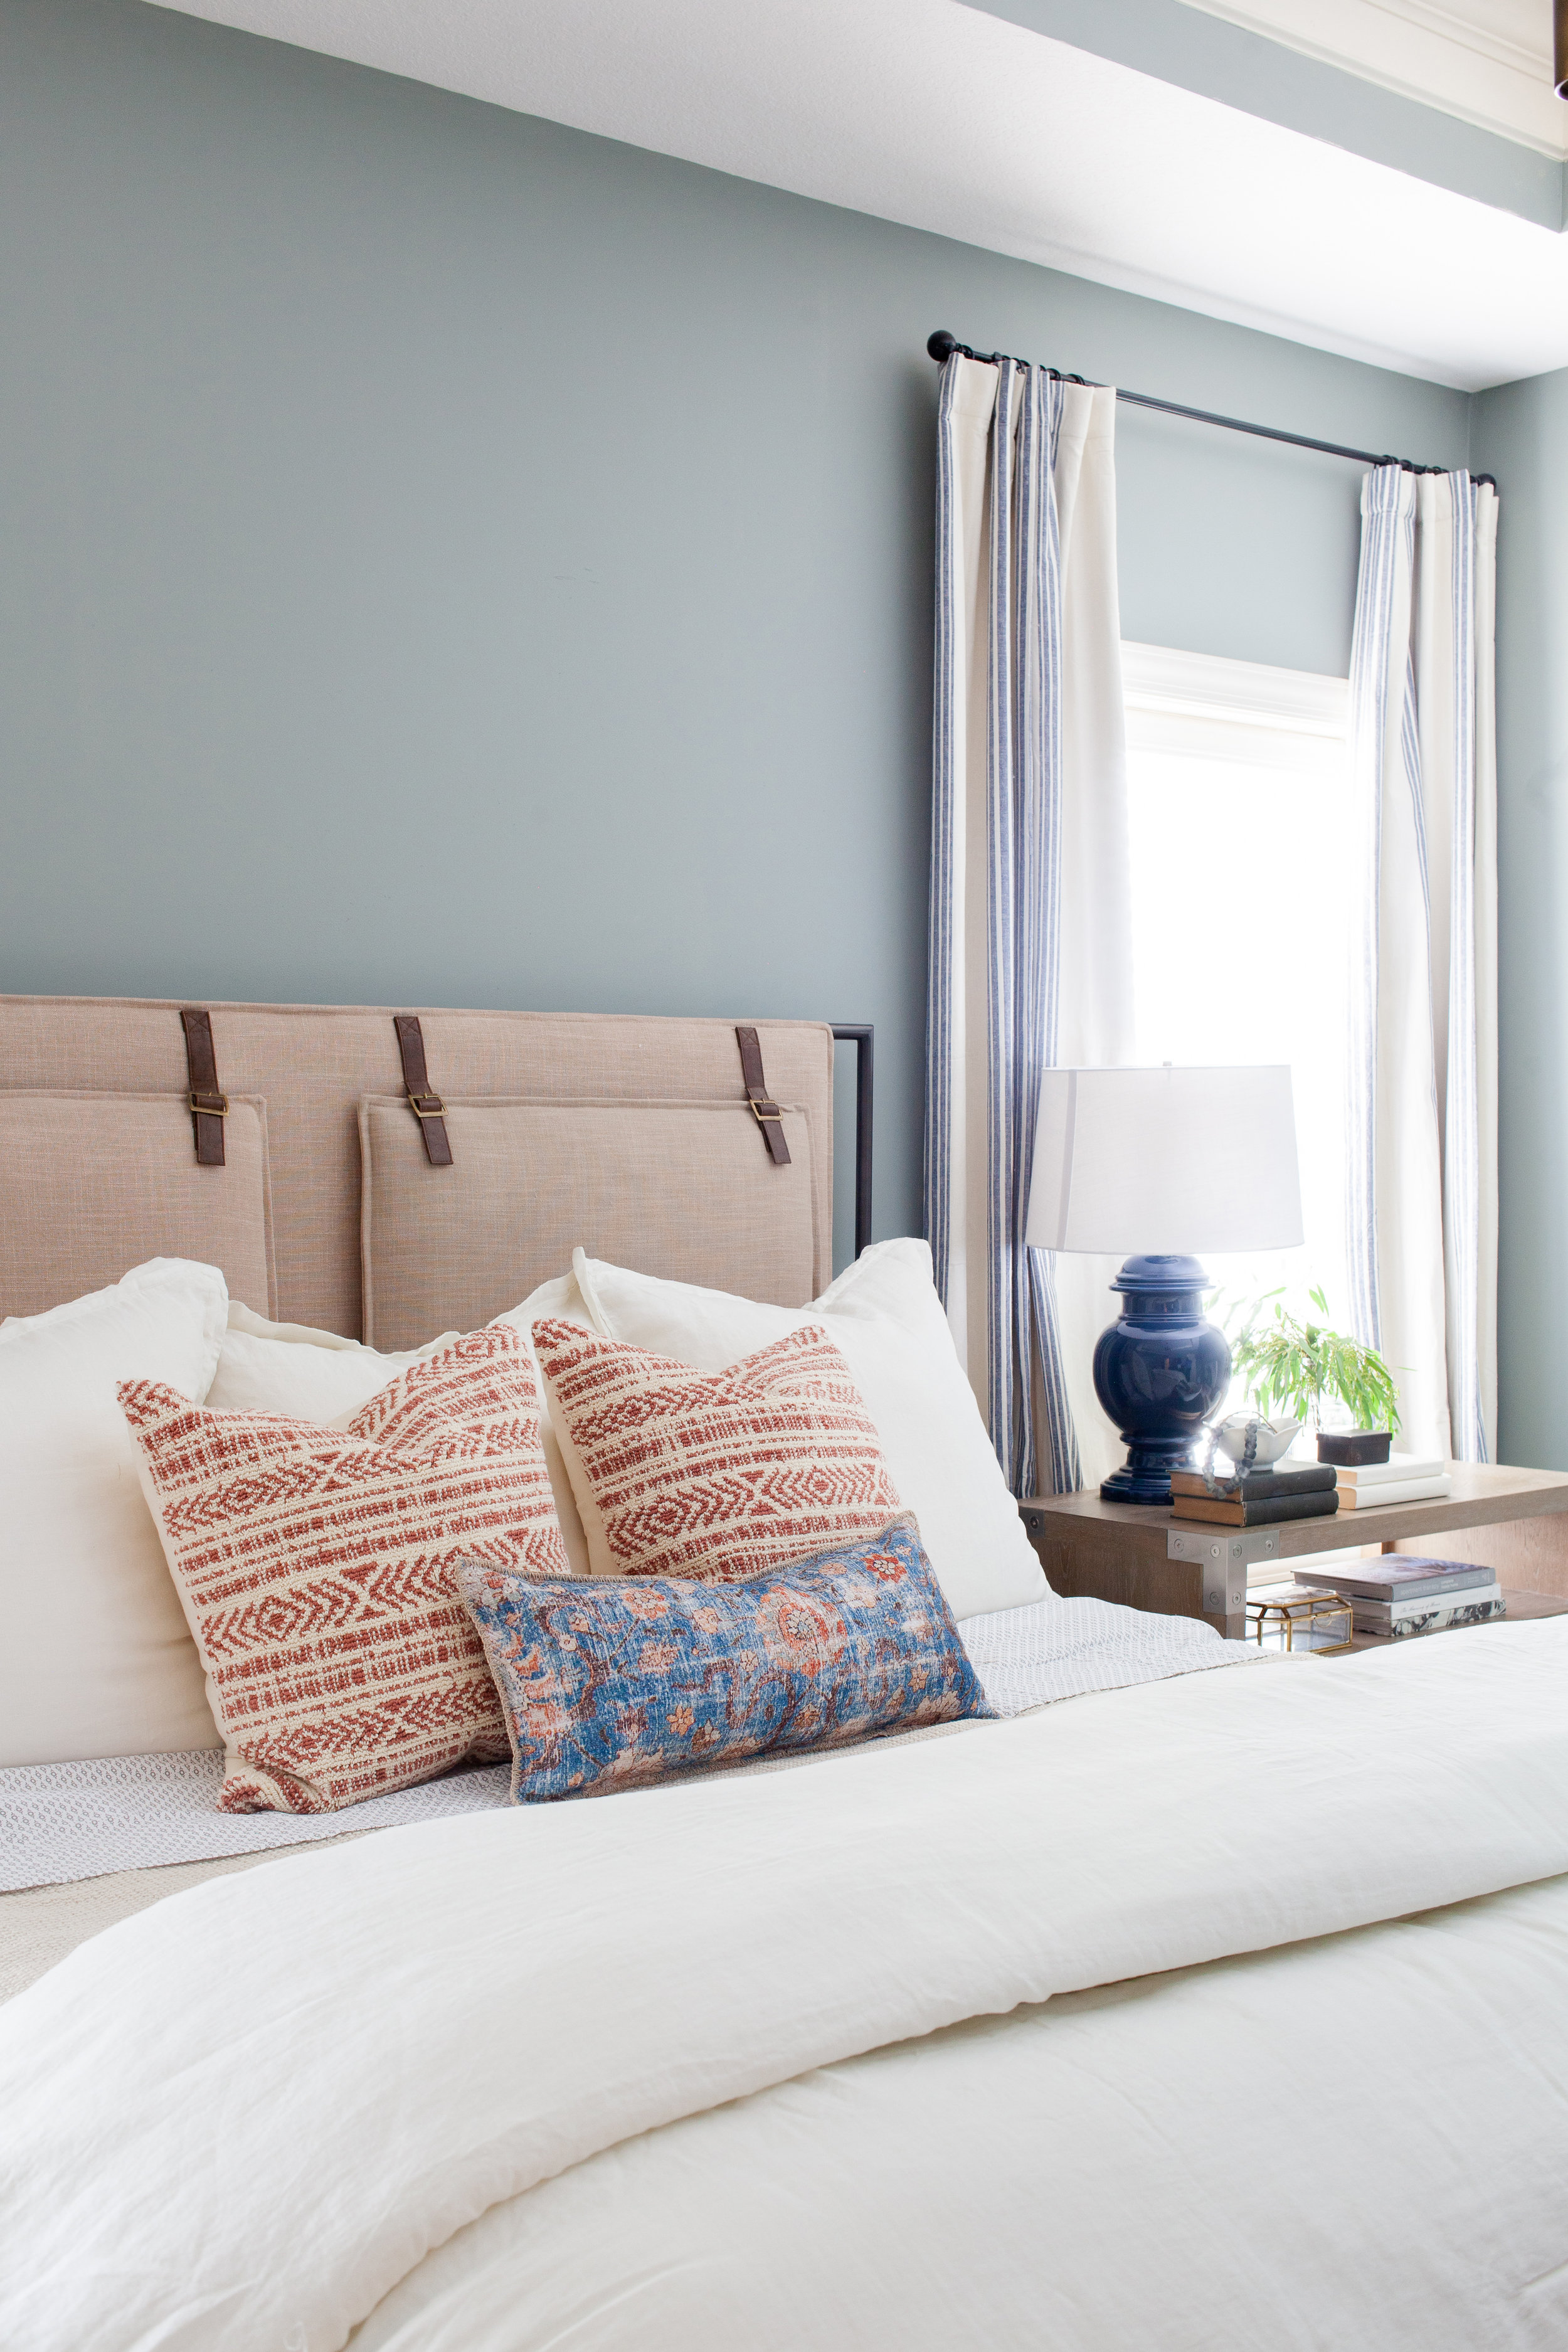 SHOP THE LOOK   |   Blue/Multi Lumbar Pillow    ($69.00 - $89.00) ,    Leigh Upholstered Bed    ($1,747.08),    Keely Rust/Natural Pillow    ($89.90),    Shilo Nightstand    ($1,368.00)